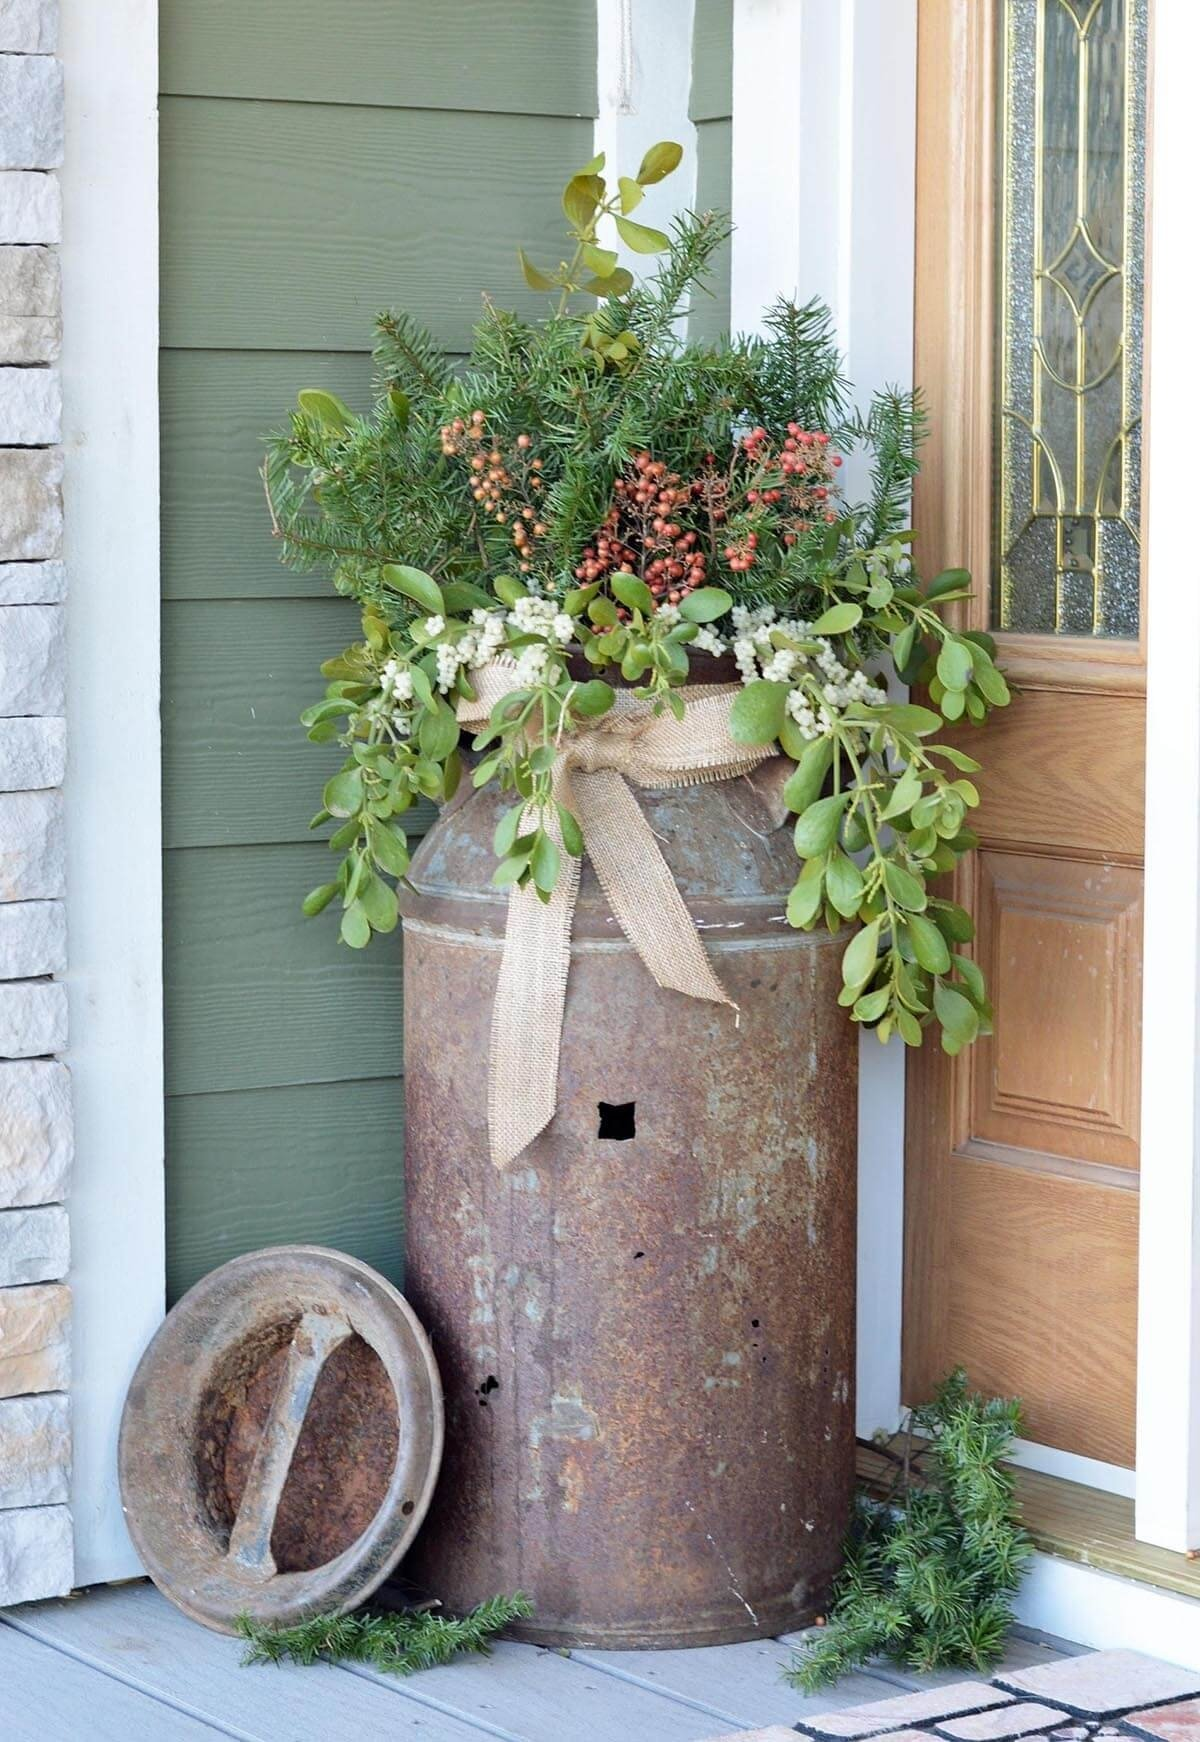 10 Awesome Planter Ideas For Front Porch 29 best front door flower pots ideas and designs for 2018 2 2021